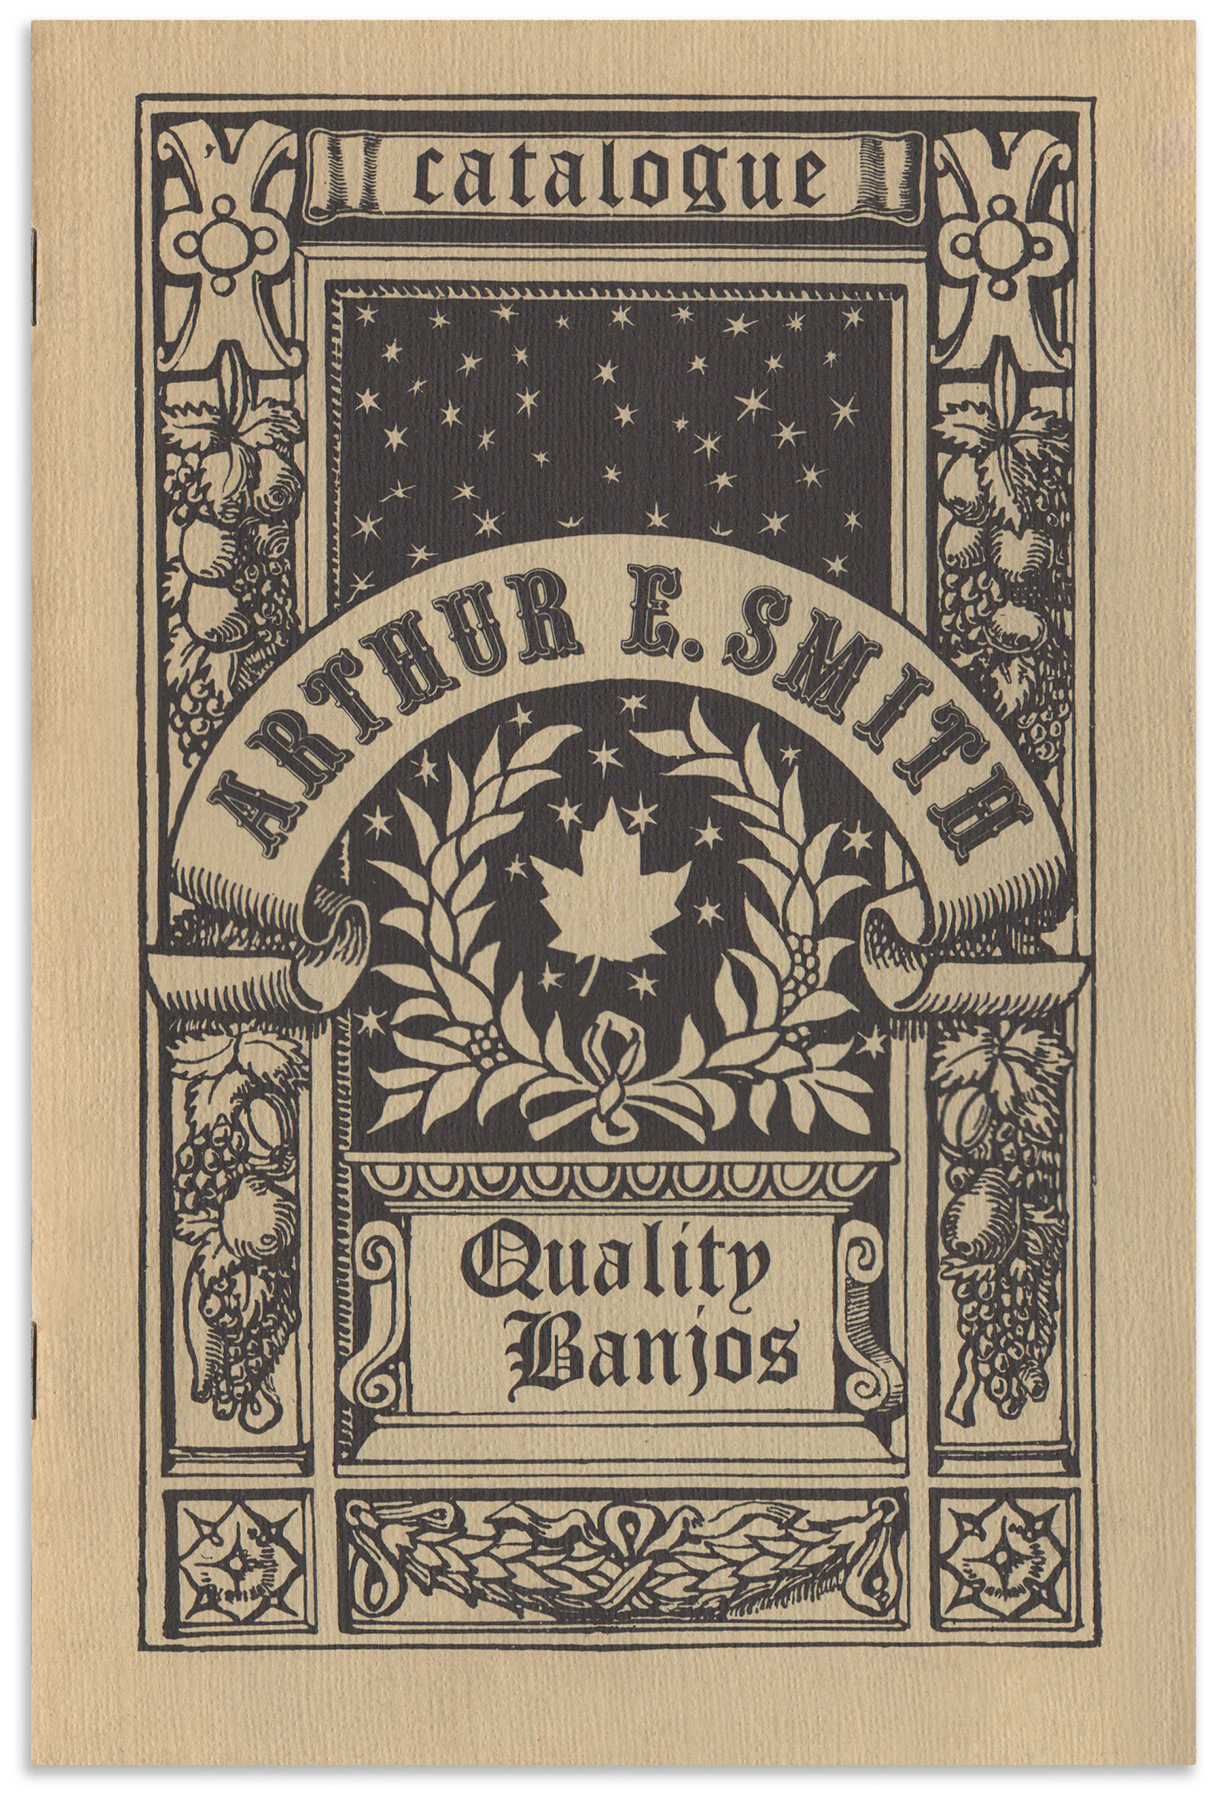 A-E-Smith-Banjo-Company-Catalog-cropped